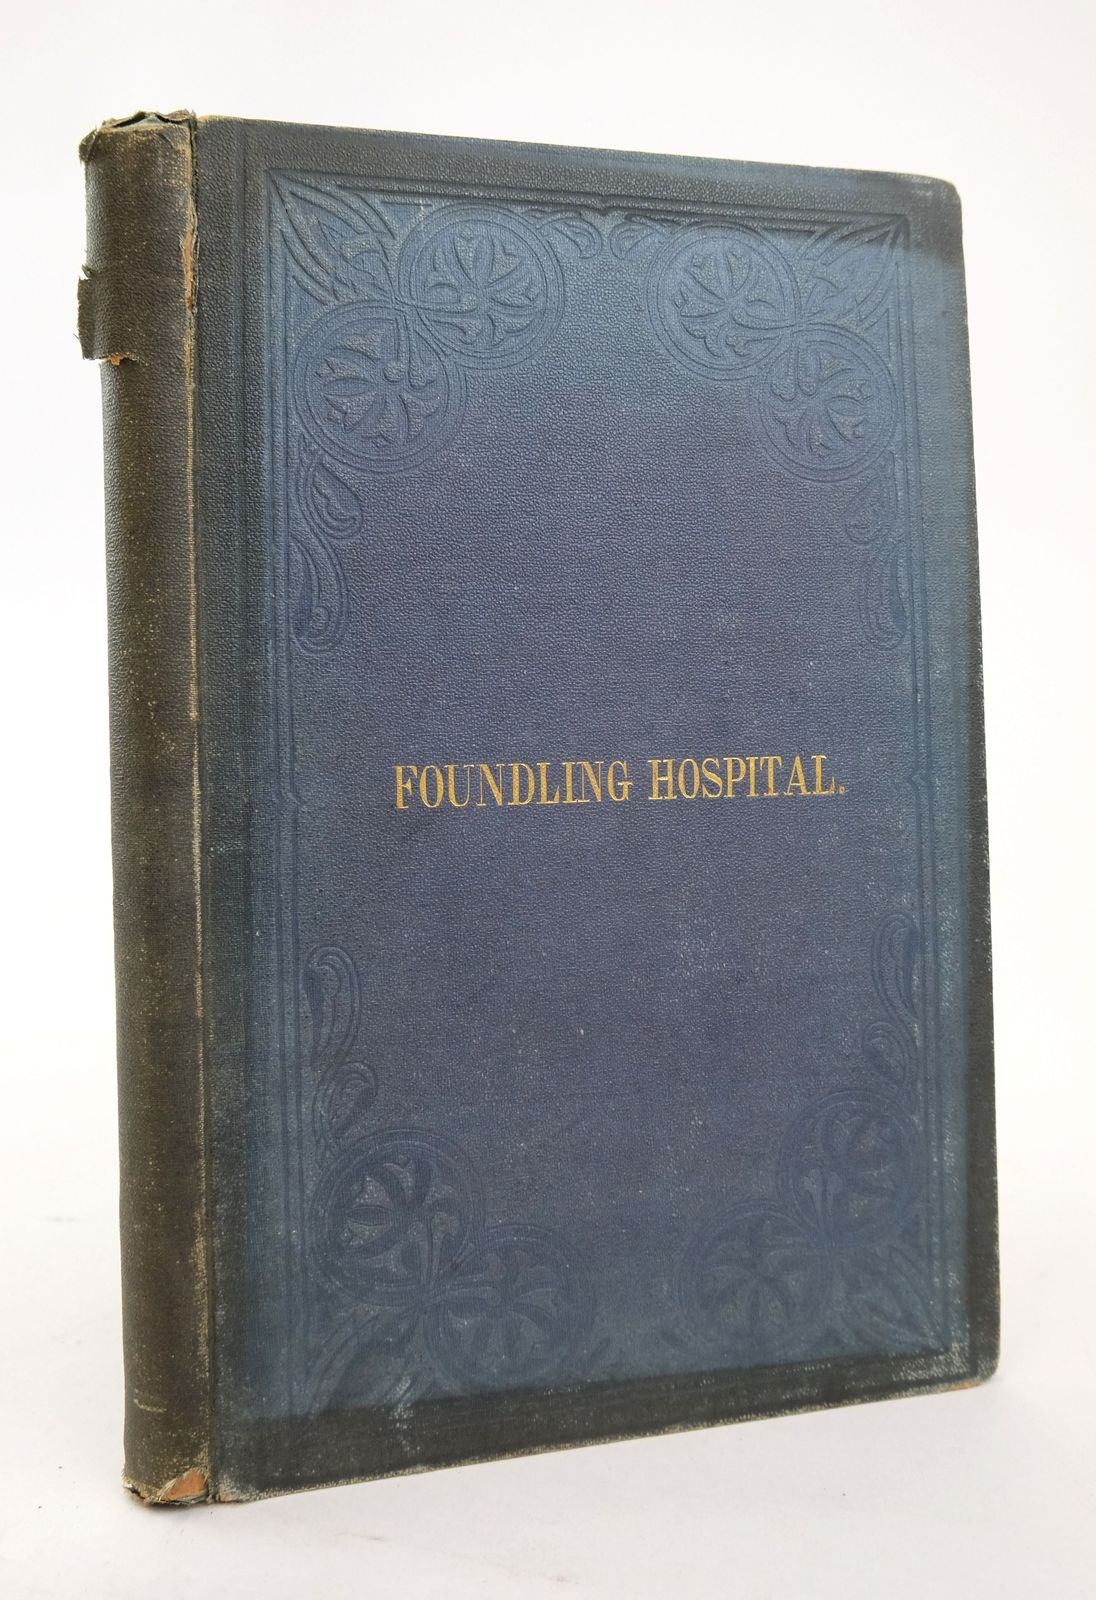 Photo of THE HISTORY AND OBJECTS OF THE FOUNDLING HOSPITAL WITH A MEMOIR OF THE FOUNDER written by Brownlow, John published by C. Jaques (STOCK CODE: 1820909)  for sale by Stella & Rose's Books